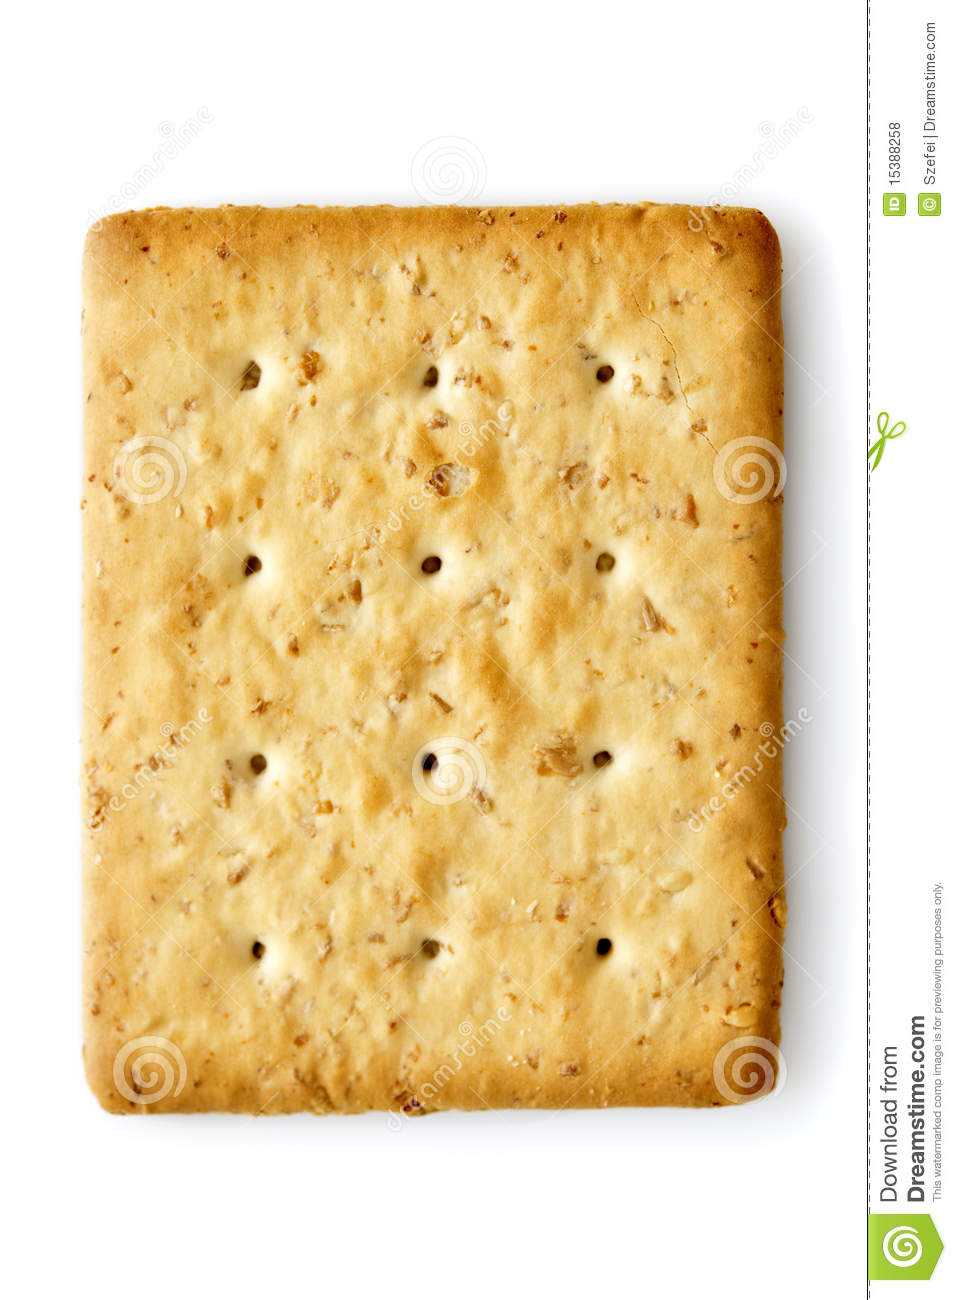 Oat Cracker Royalty Free Stock Photos - Image: 15388258